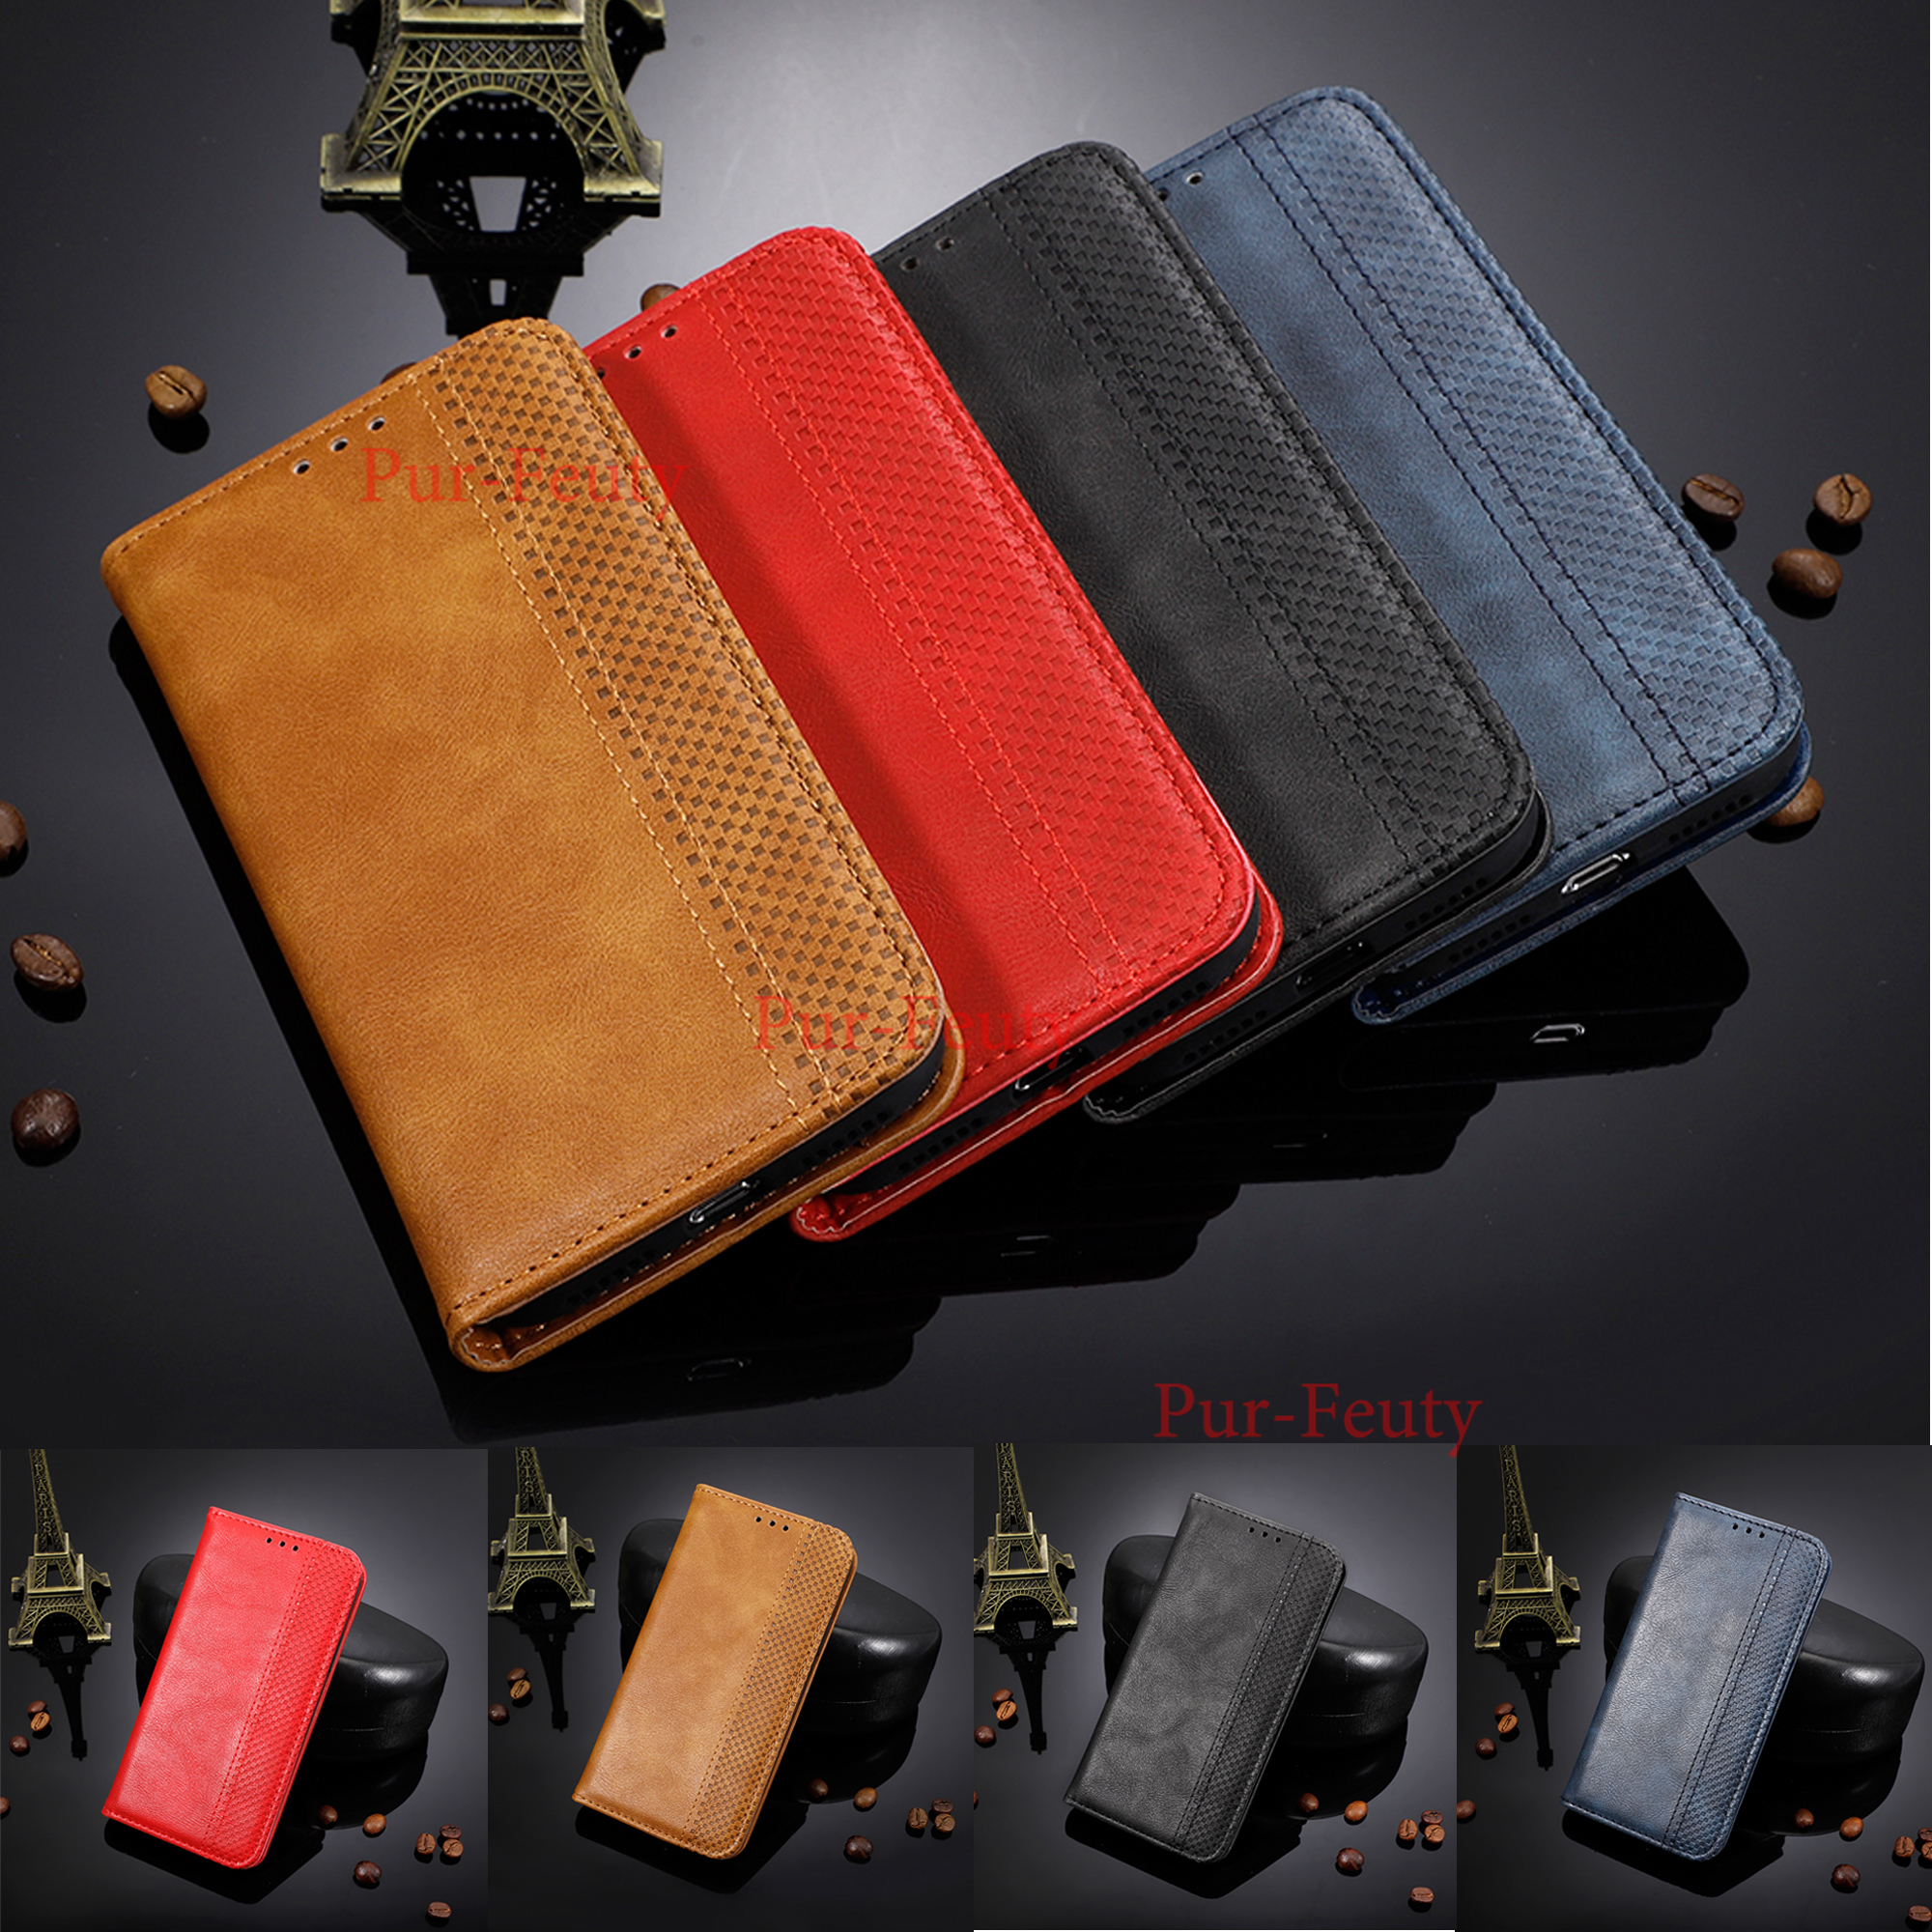 for Samsung Galaxy A 70s A70S A70 S Cover Magnet Retro Leather Coque for Samsung A7 <font><b>2018</b></font> A70 A <font><b>70</b></font> SM-A705F A705 wallet Covers image